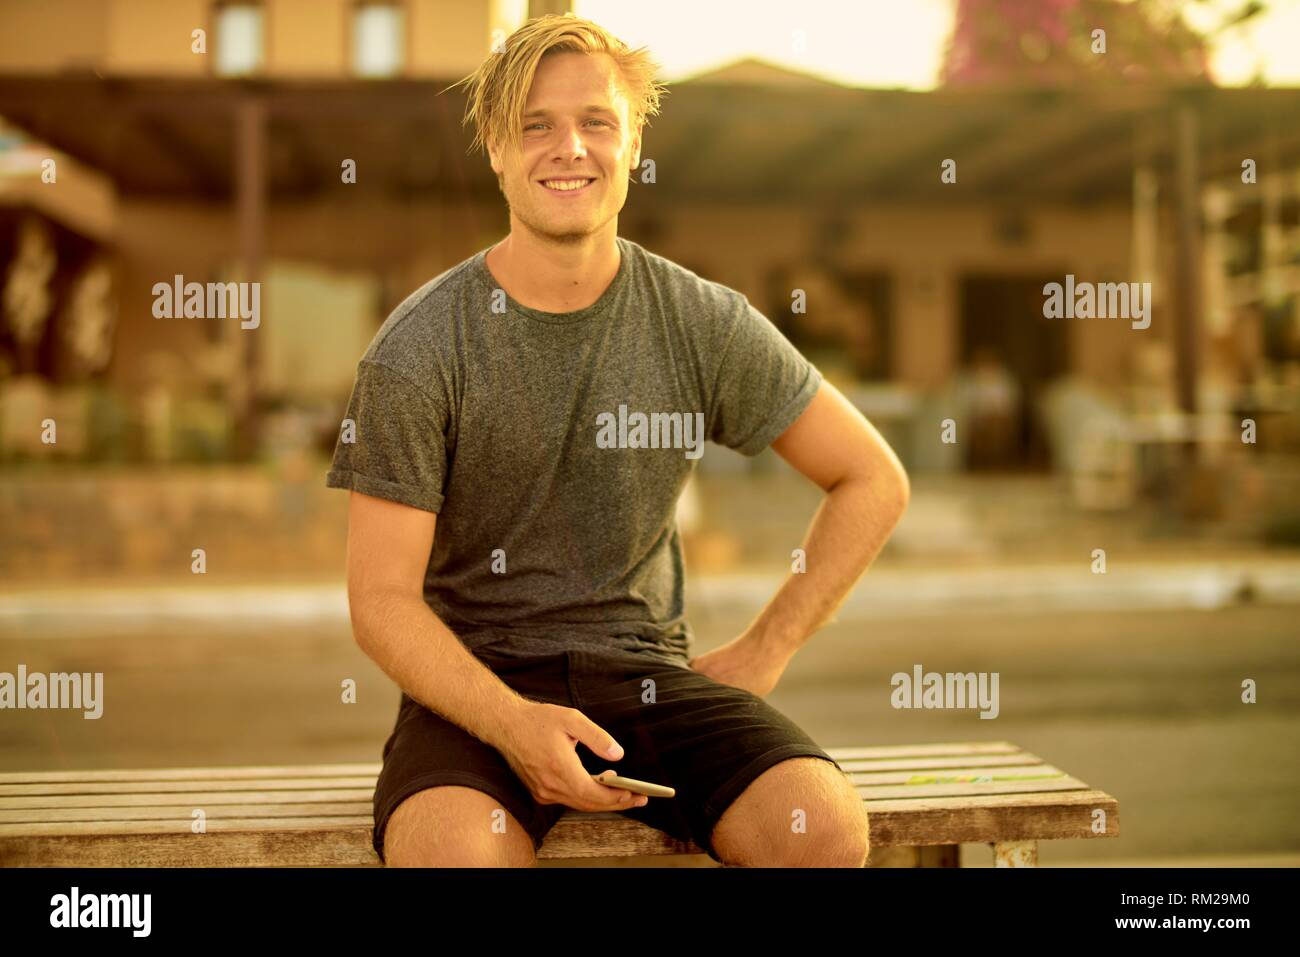 Man with smartphone sitting on bench at street, Stalida, Crete, Greece. Stock Photo